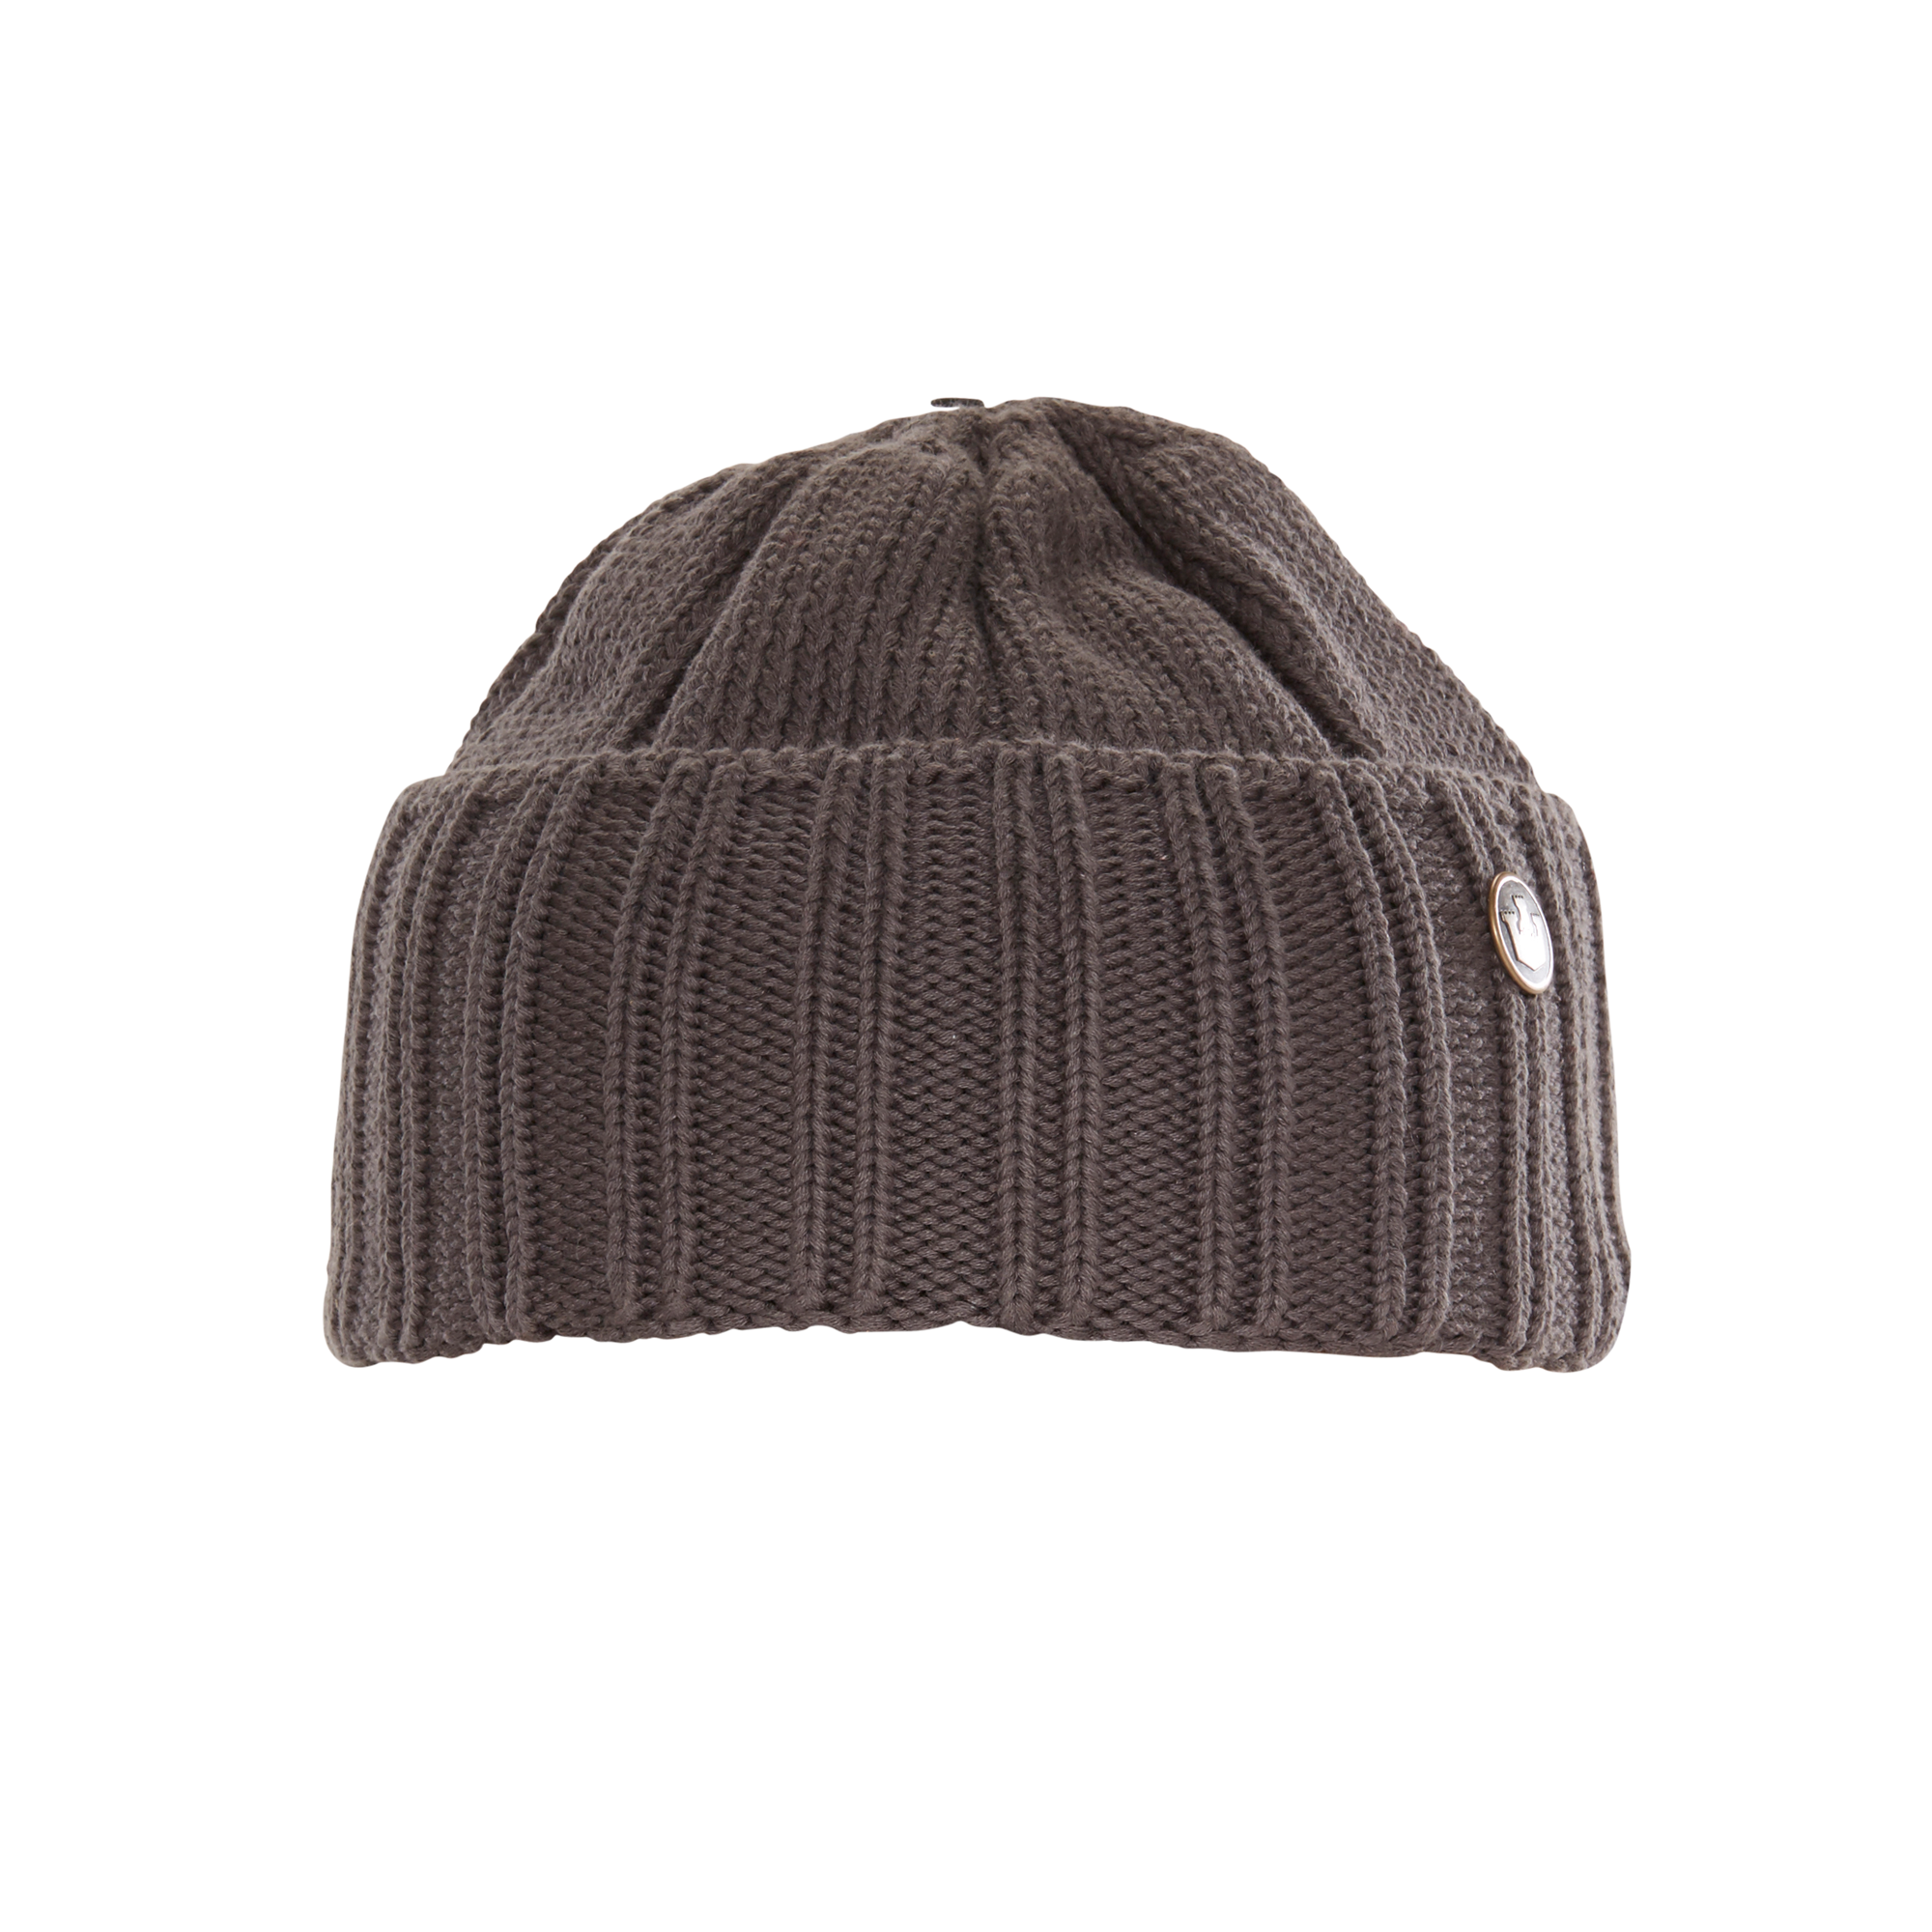 beanie hat png